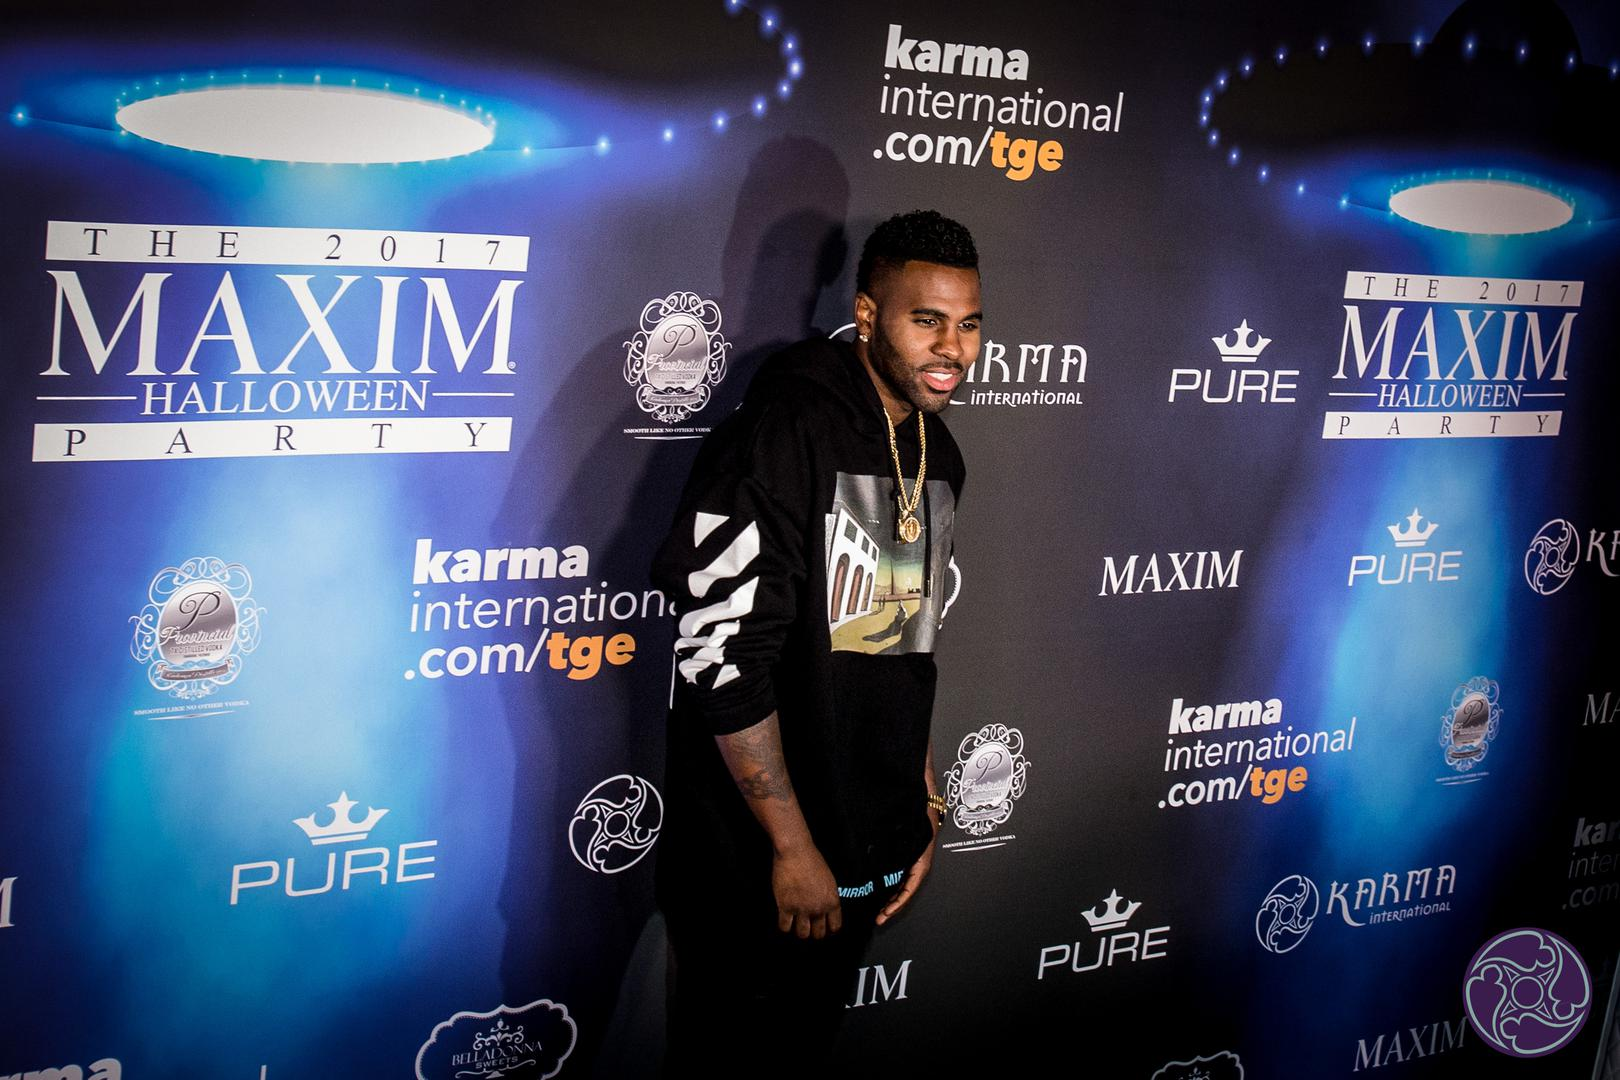 Jason Derulo performed at the 2017 Maxim Halloween Party